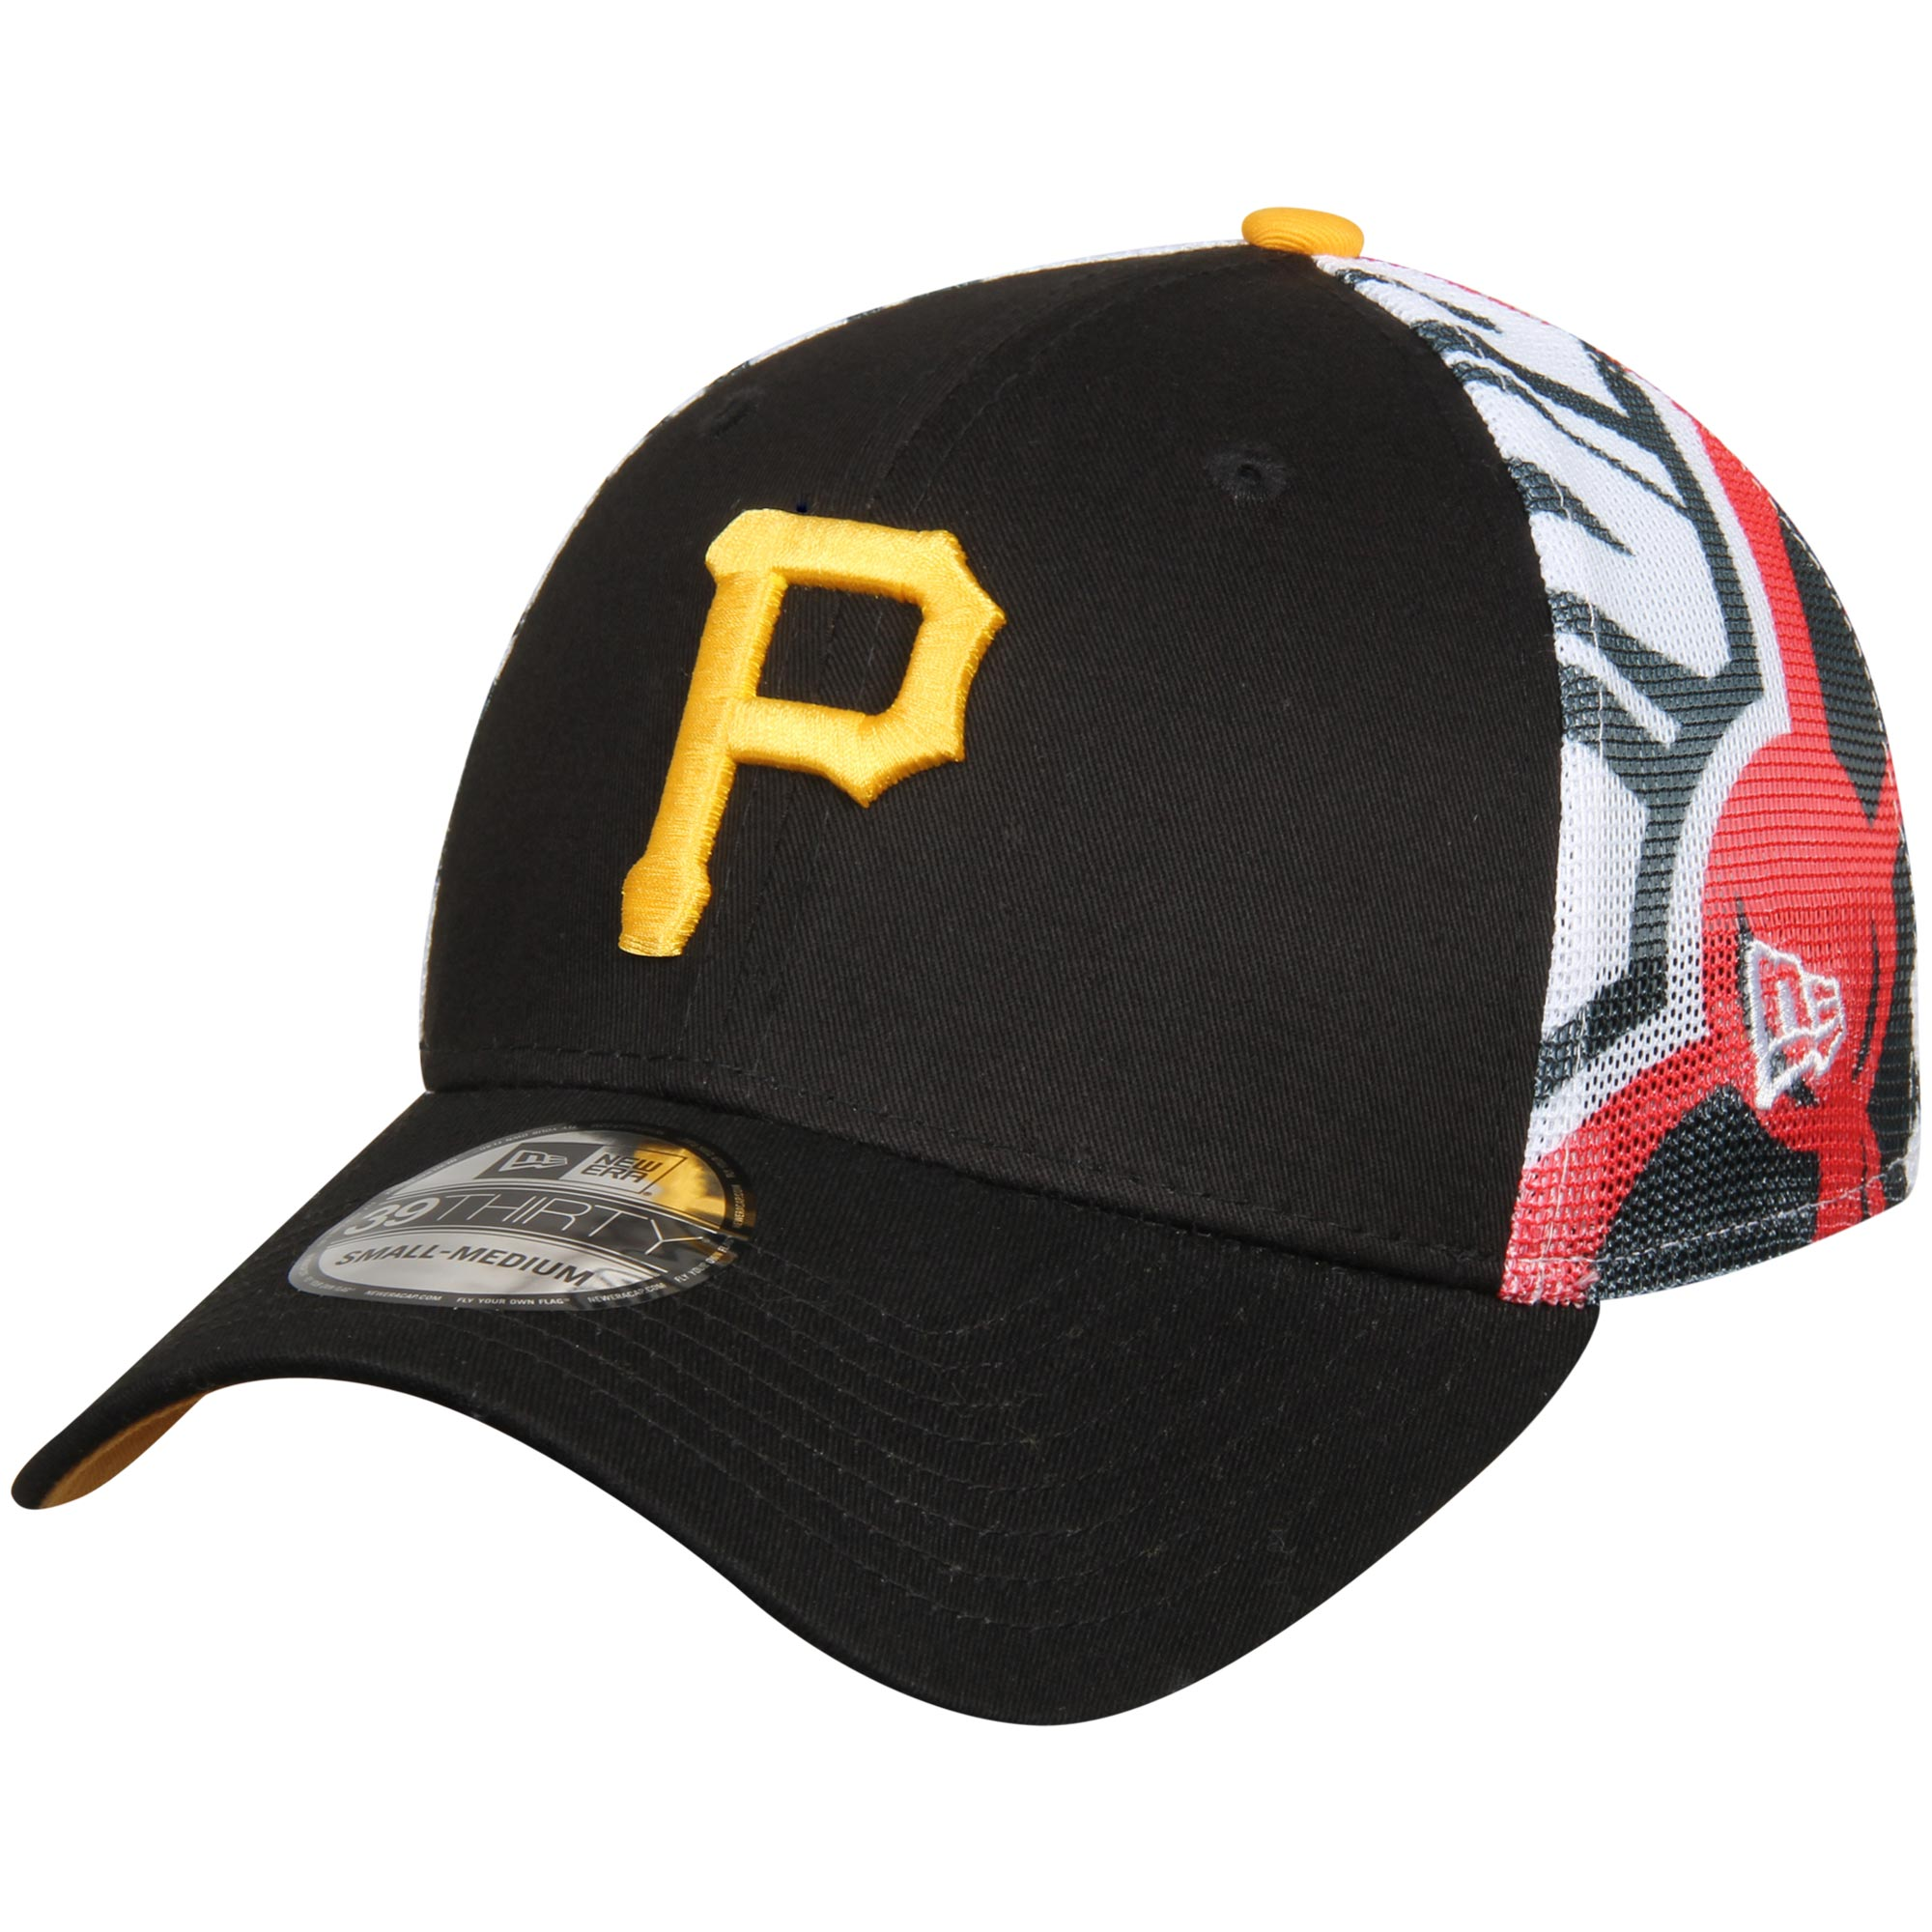 8b5e13b104175 ... sale pittsburgh pirates new era logo wrapped 39thirty flex hat black  walmart 3fbb2 431b6